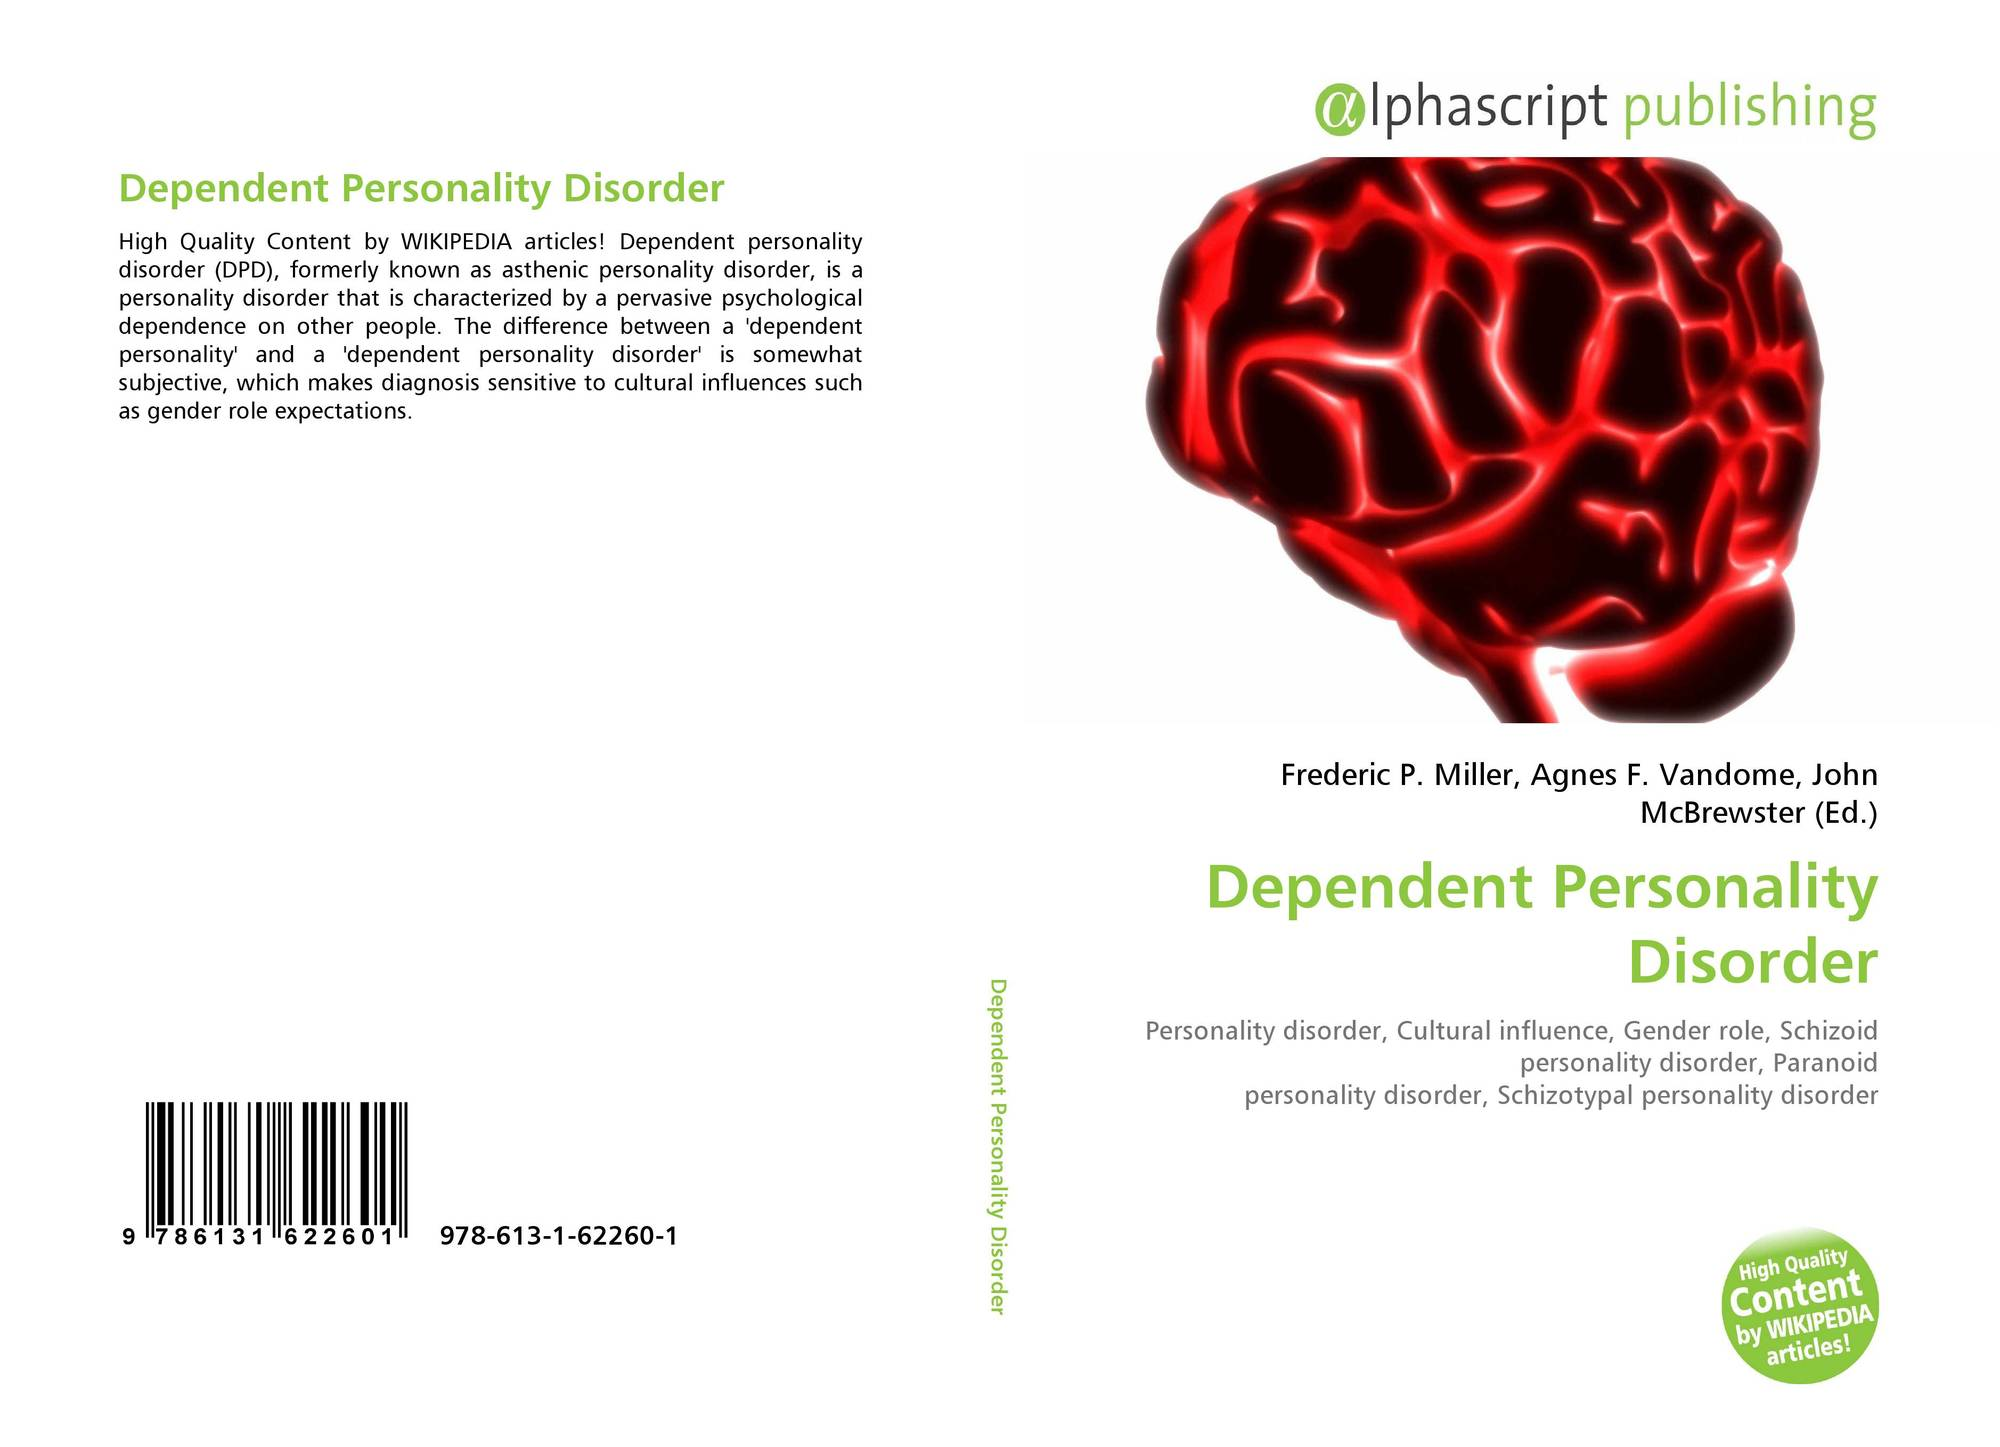 Dependent Personality Disorder, 978-613-1-62260-1